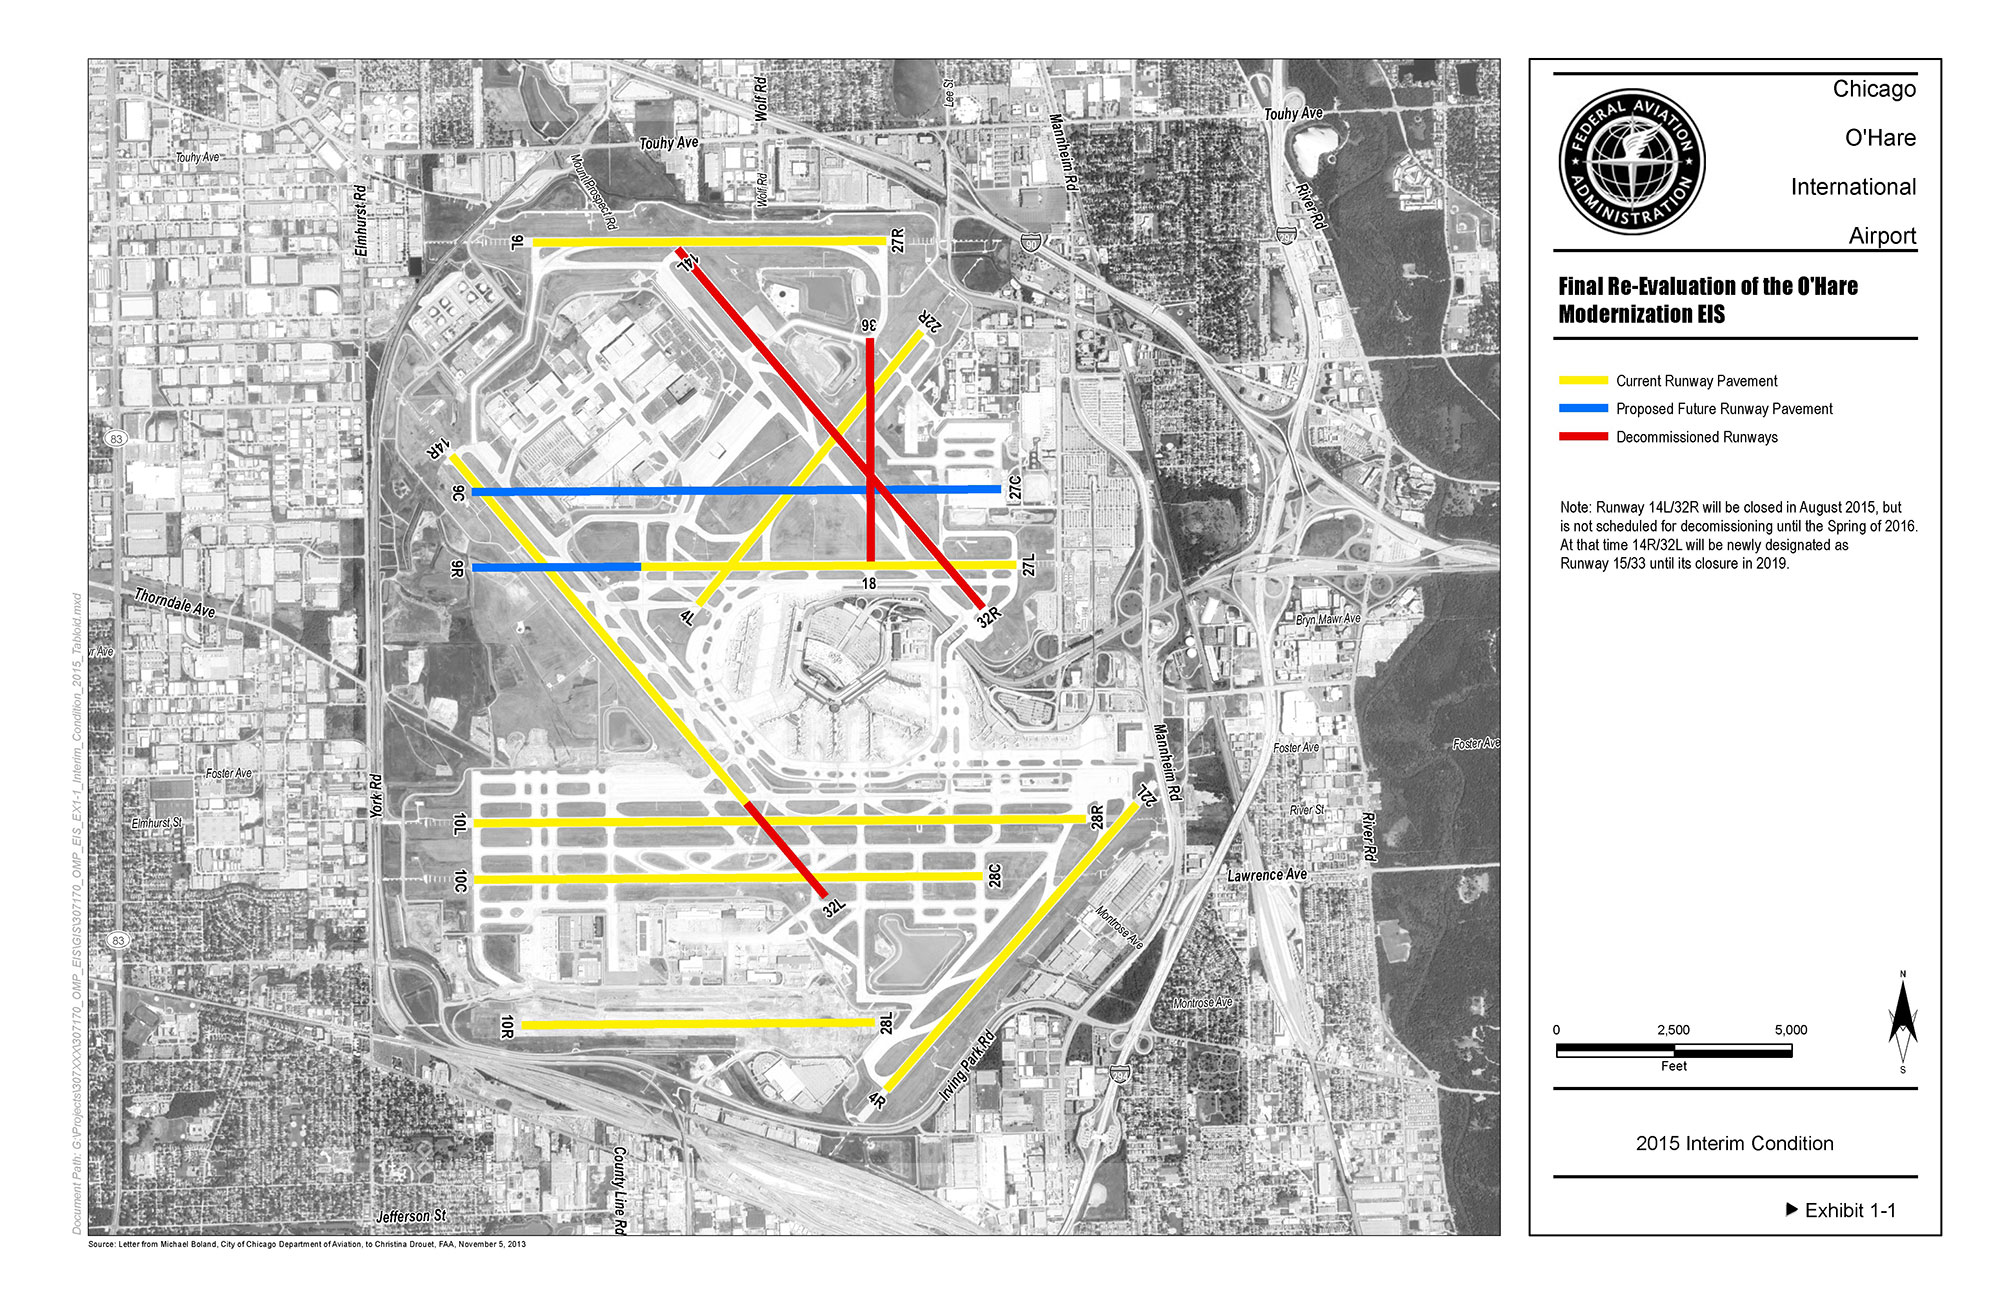 Re-Evaluation of the Chicago O'Hare Modernization EIS